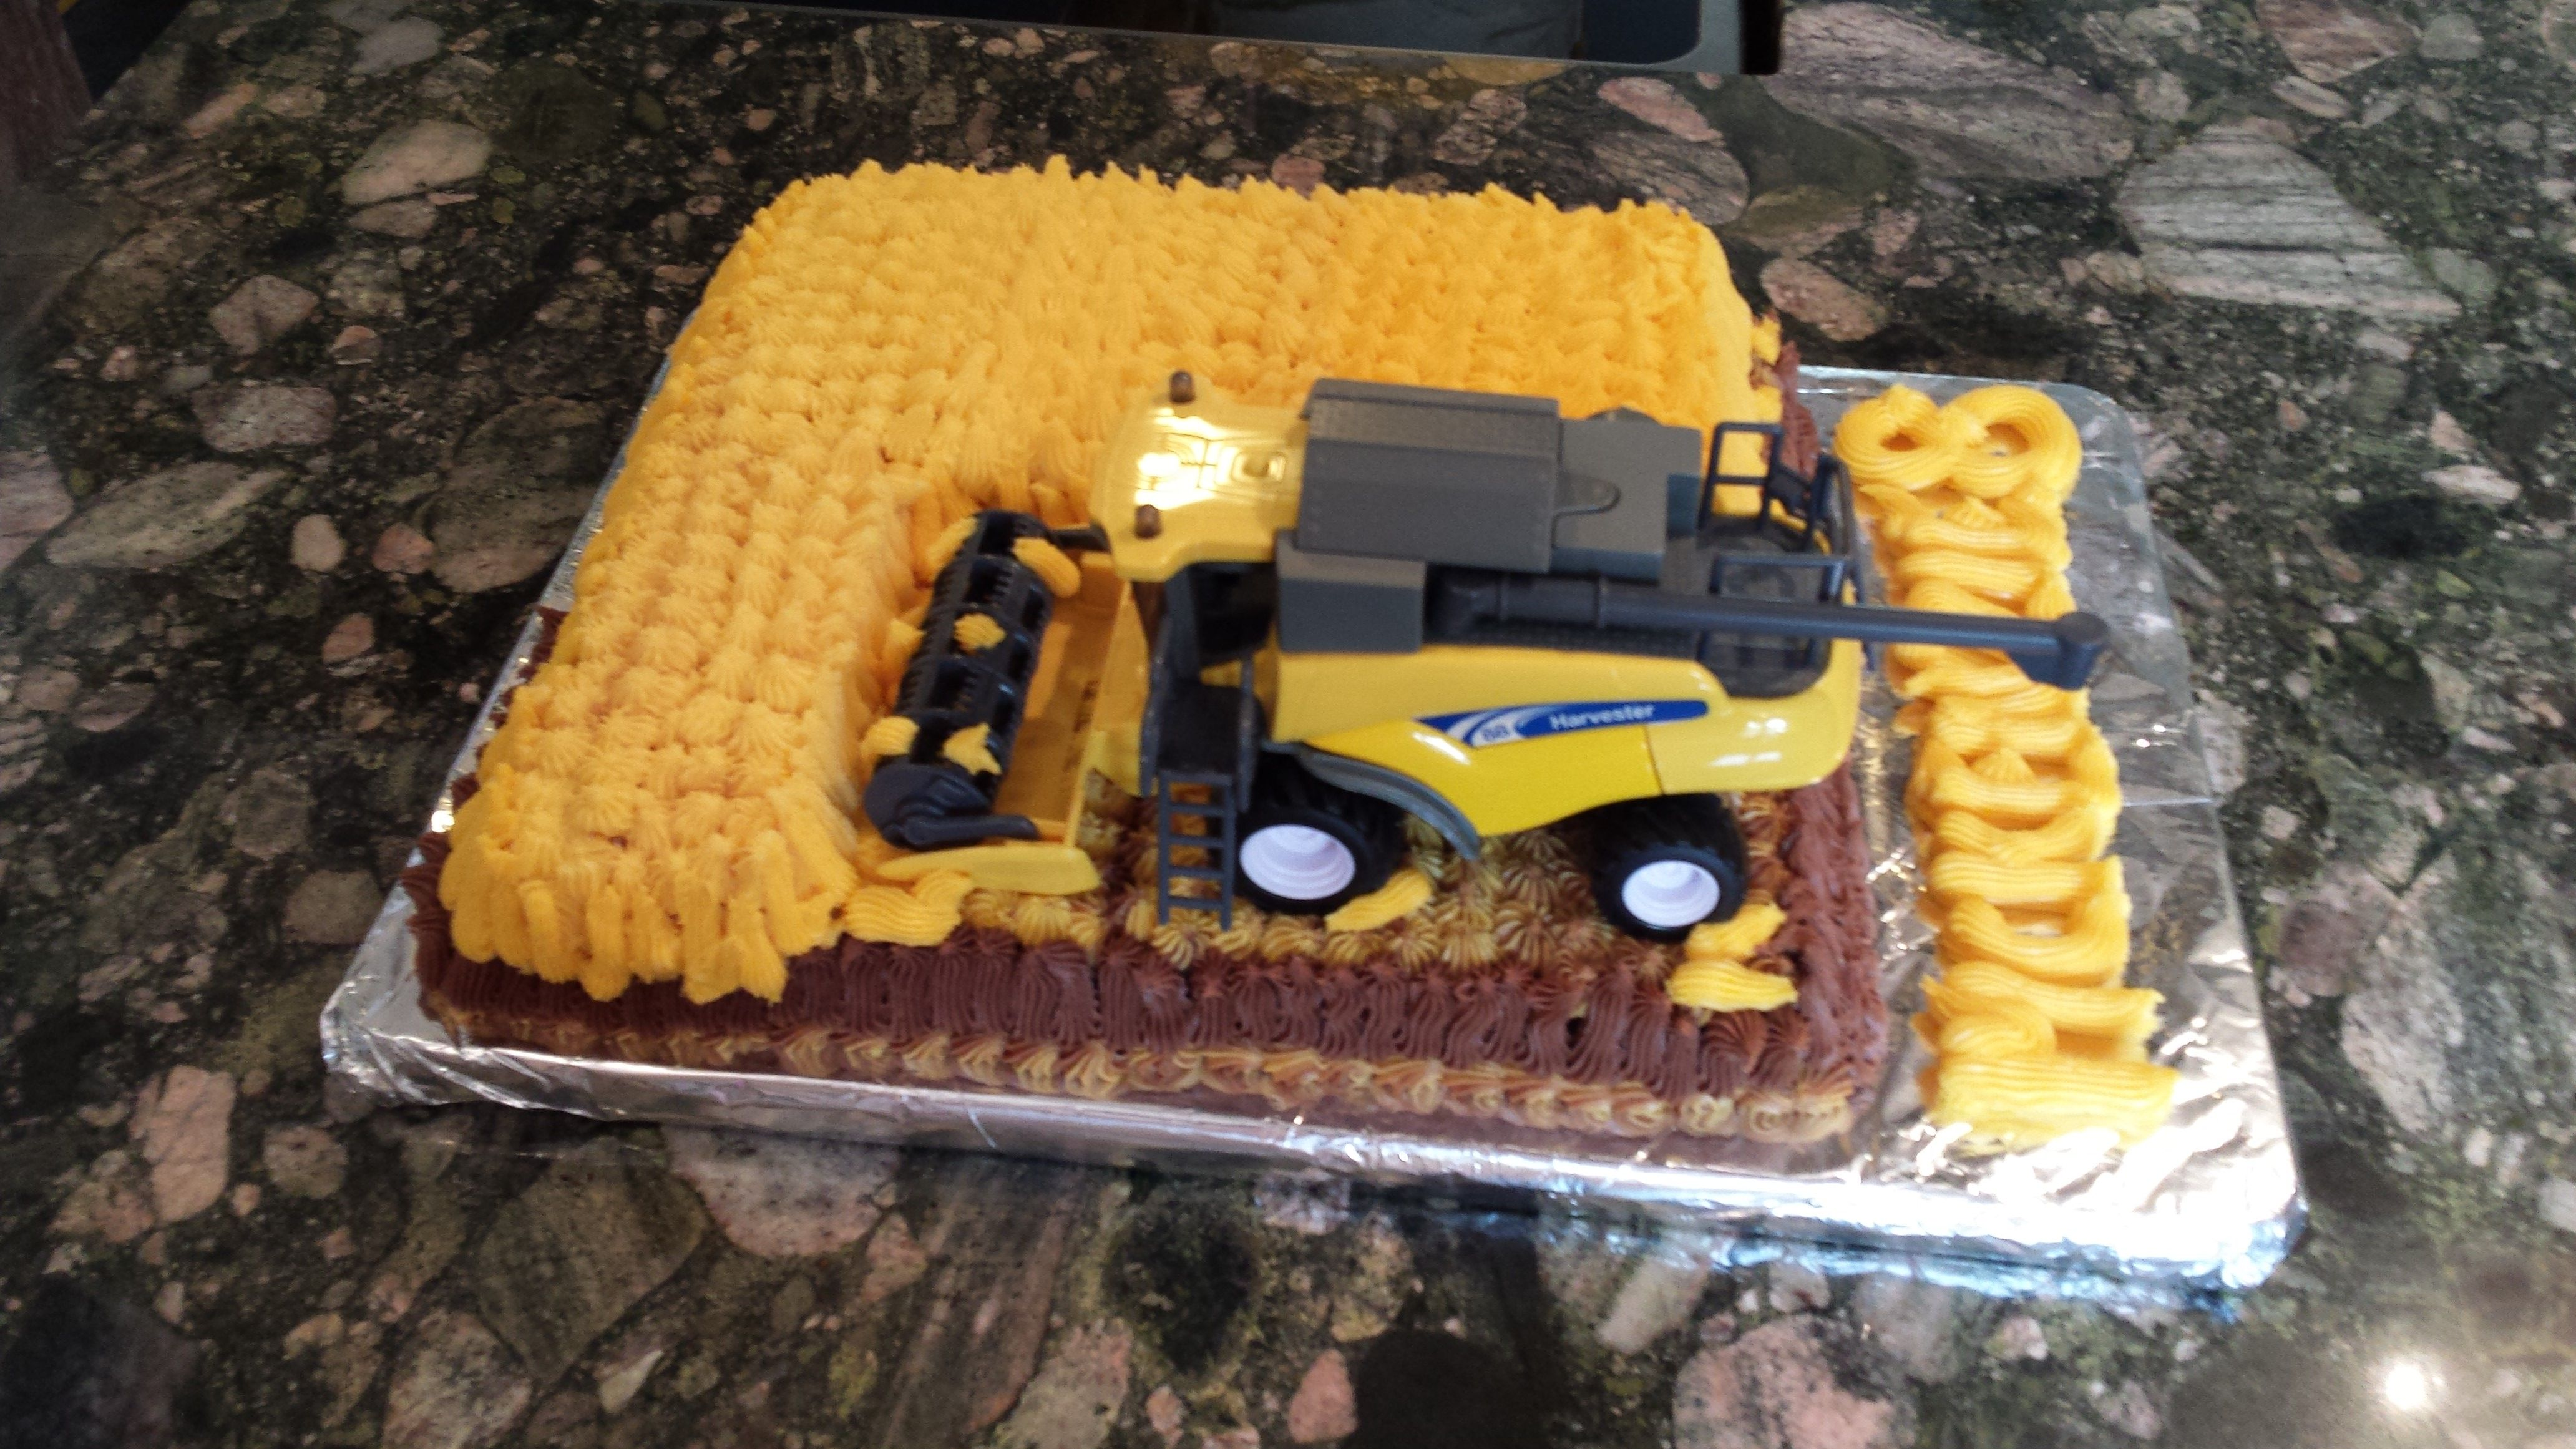 my little pony cake decorating ideas.htm combine harvester cake my birthday cake makes in 2019 my  combine harvester cake my birthday